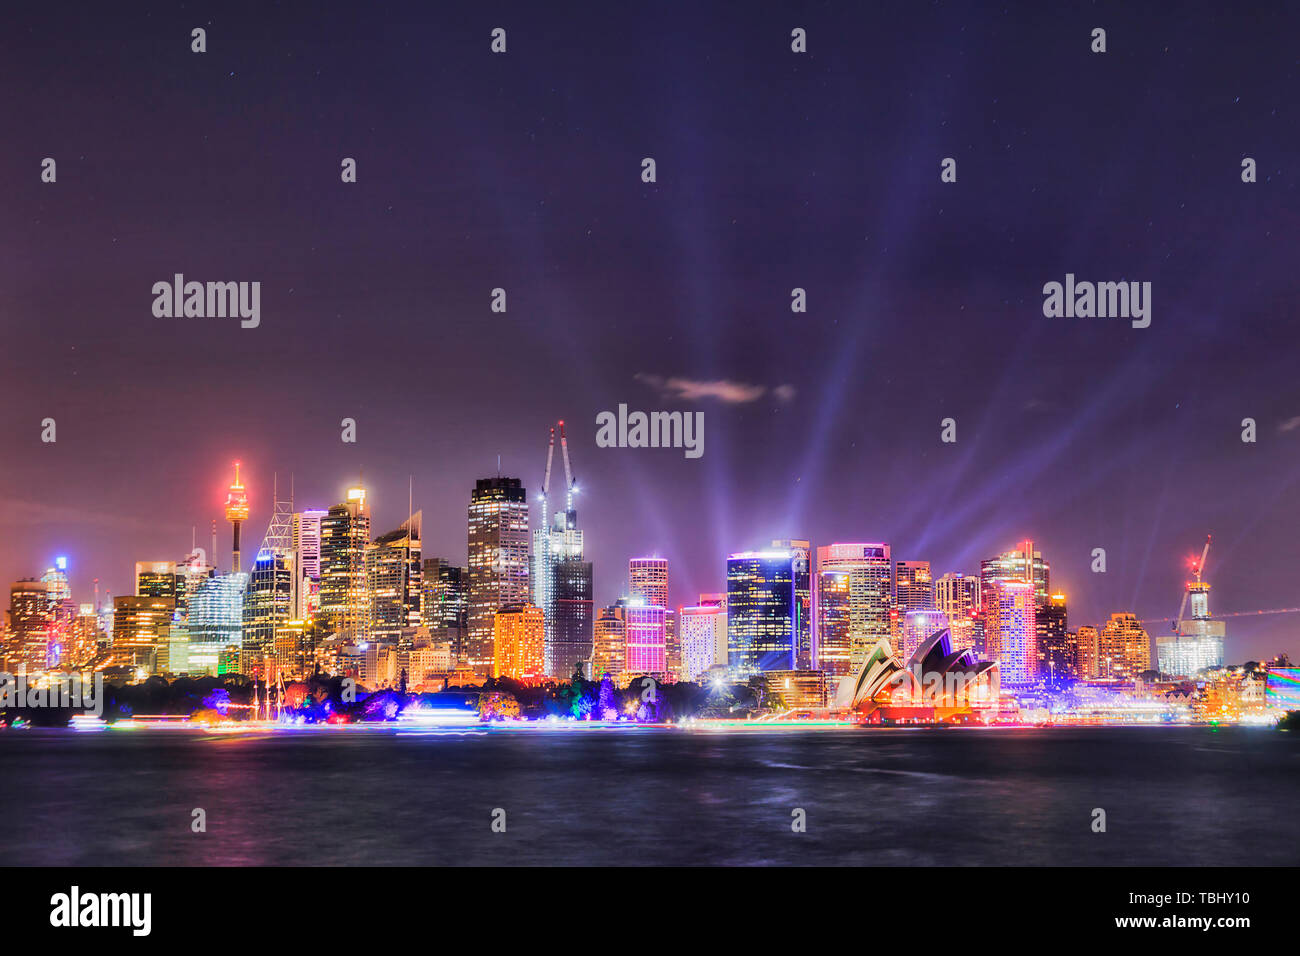 Sydney city CBD on shores of Sydney harbour in bright night time illumination by projected lights during Vivid Sydney light show festival. - Stock Image